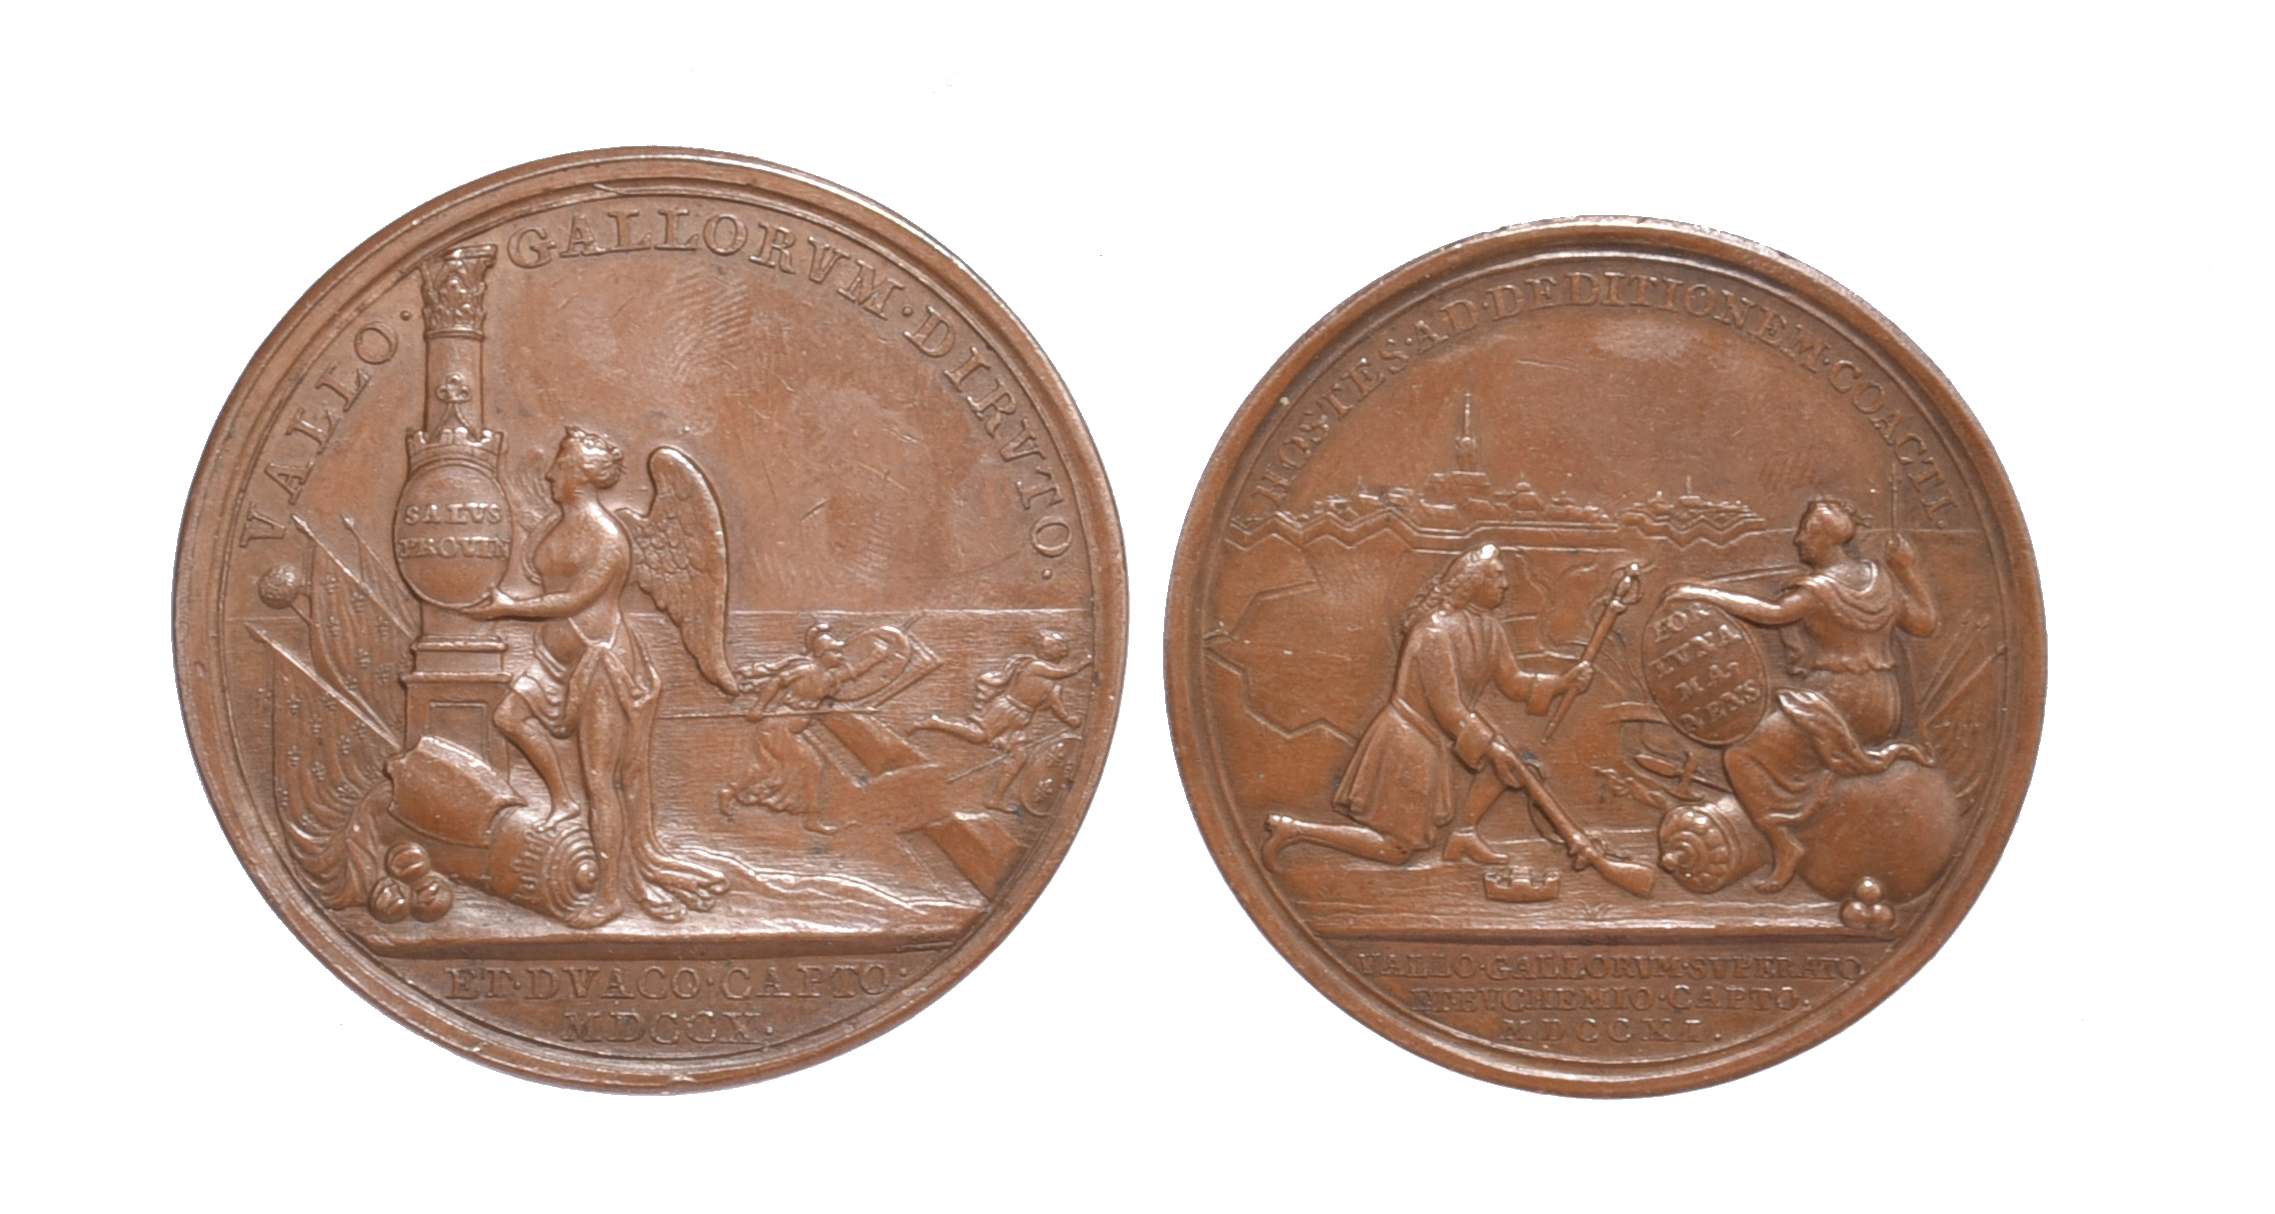 Anne (1702-14): War of the Spanish Succession, two medals: Douay Taken 1710, AE, 48mm, bust left, ' - Image 2 of 2